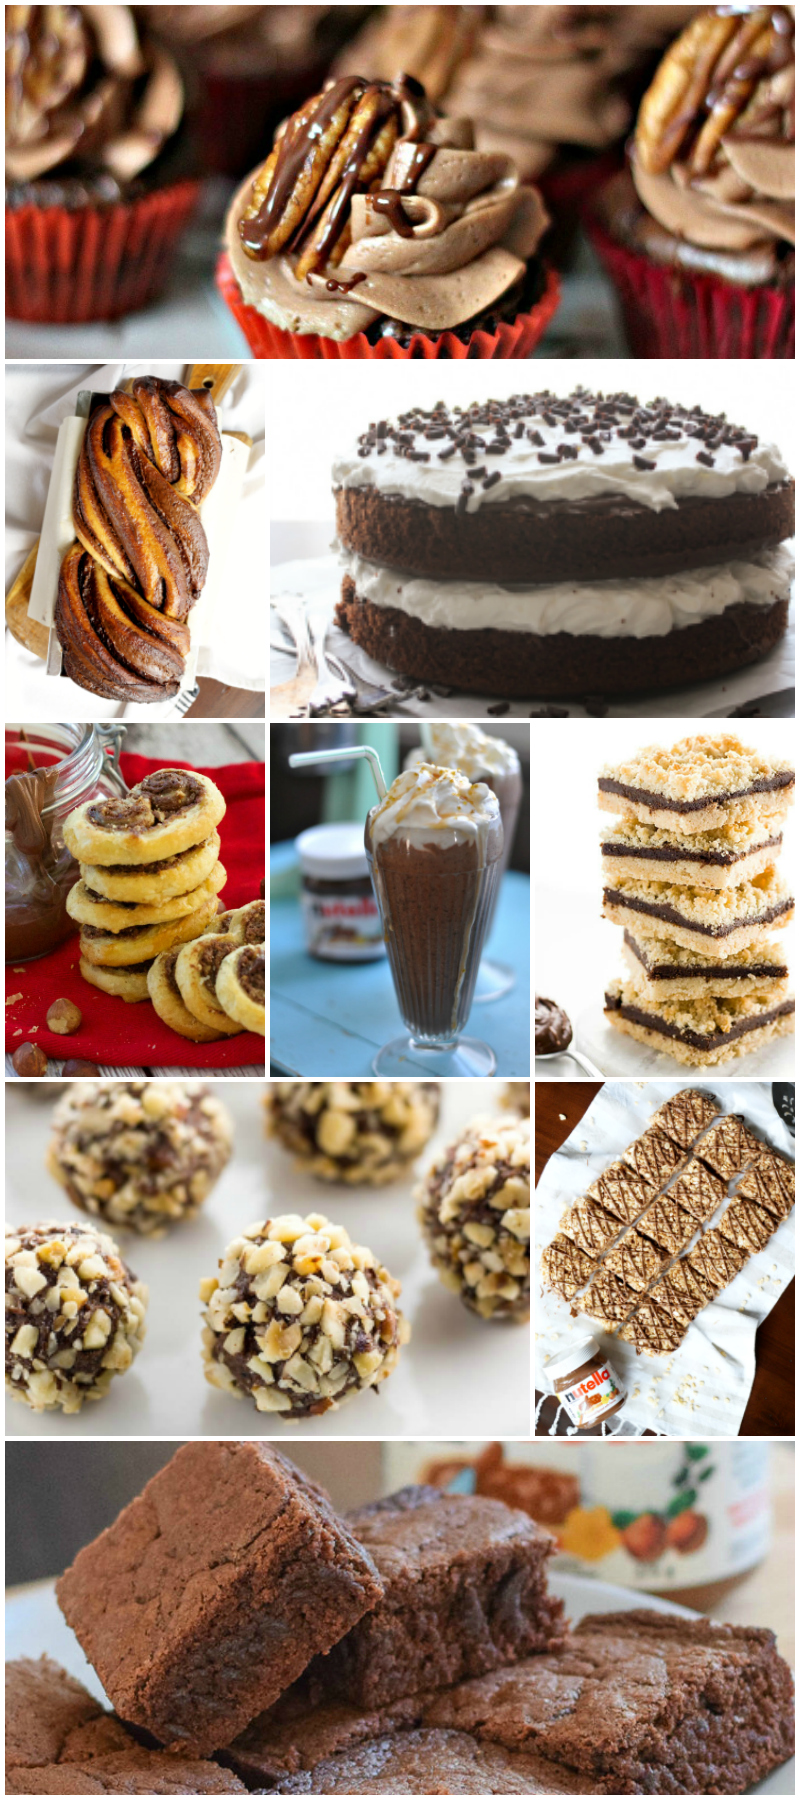 More than 40 amazingly delicious Nutella recipes - Food Blogger Recipe Round Up